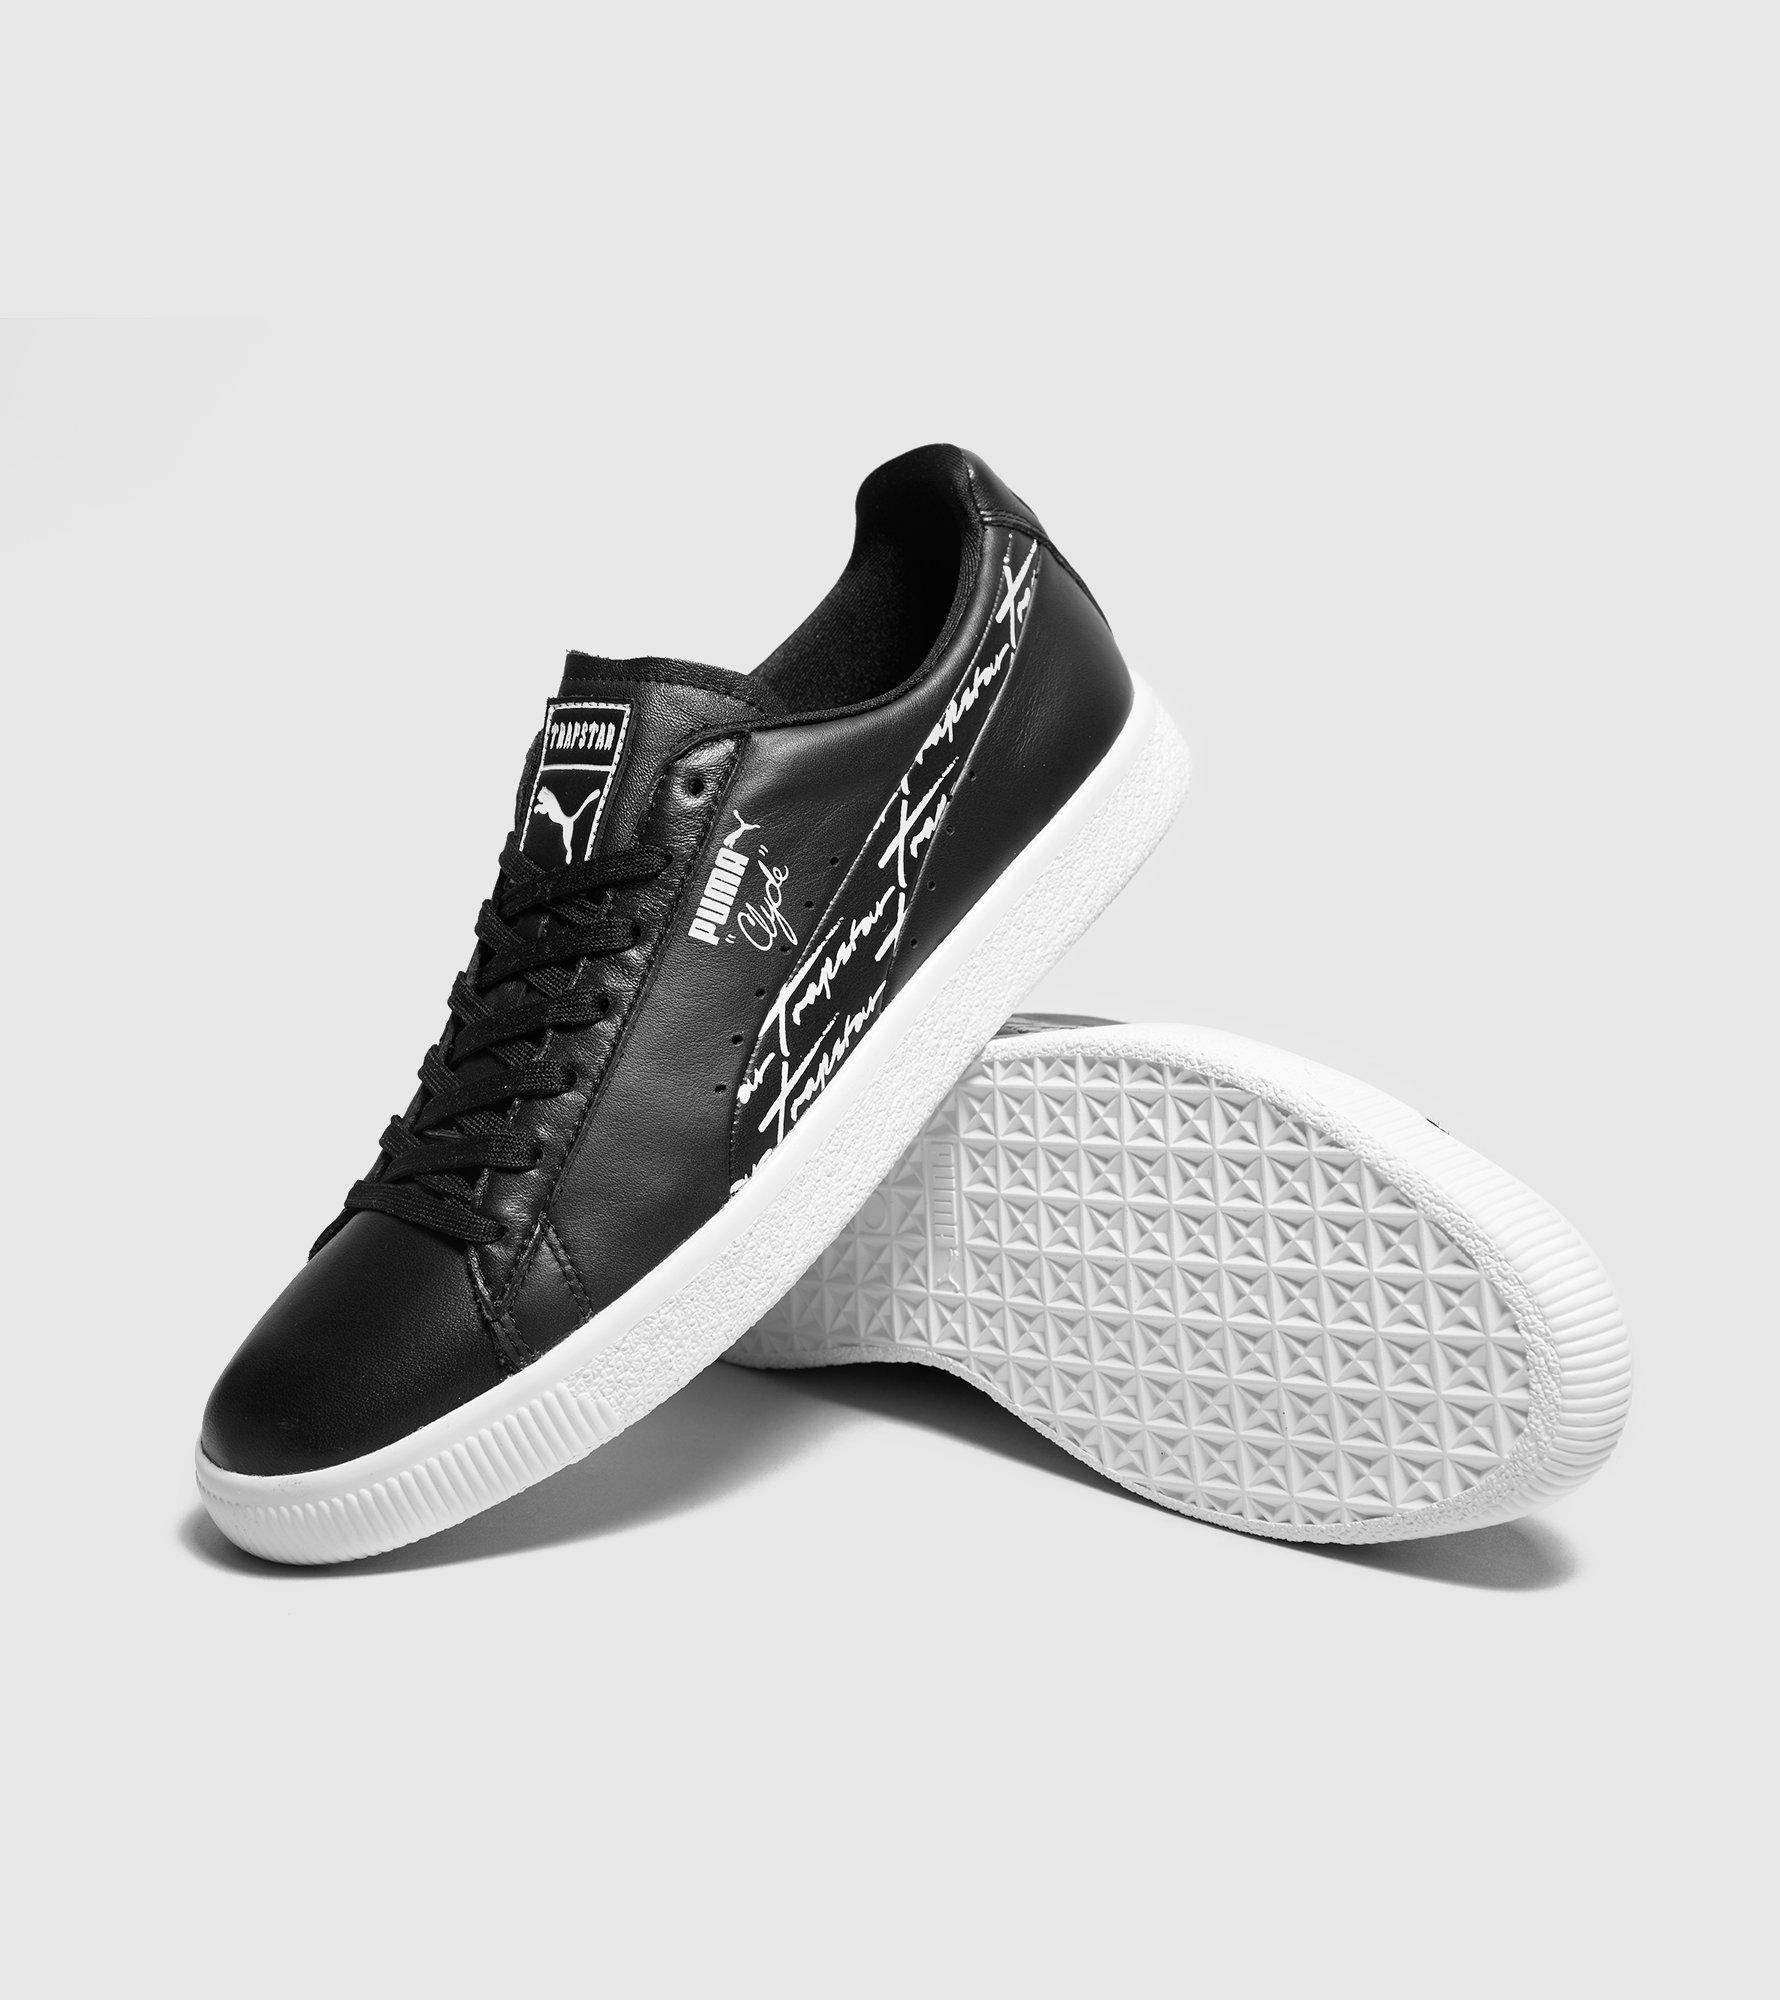 8c1c816bbb2 PUMA X Trapstar Clyde in Black for Men - Lyst